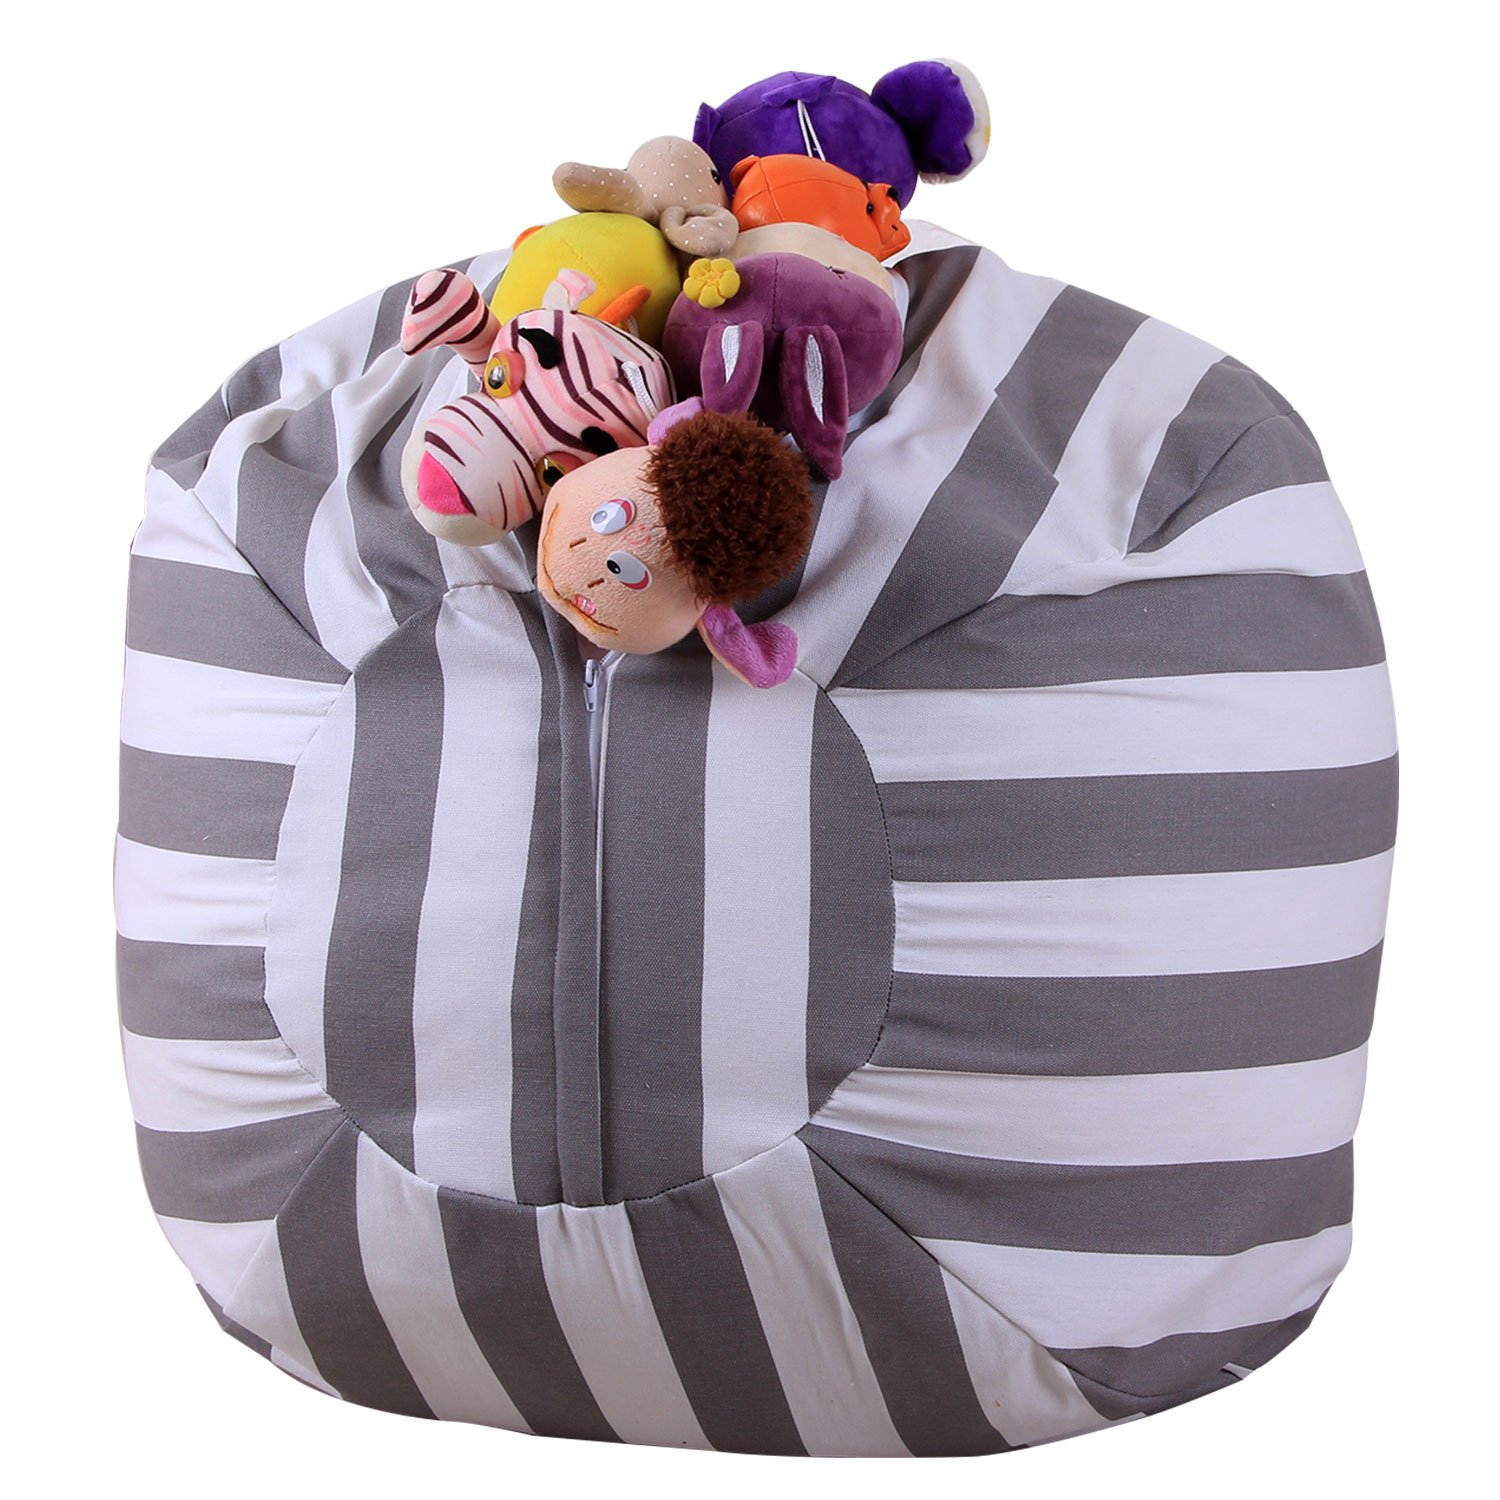 Stuffed Animal Storage Bean Bag - Toy Storage Children's Chair Cover Children Chair - Clean up the Room and Put Those Critters to Work for You! (26'') by Yonfro